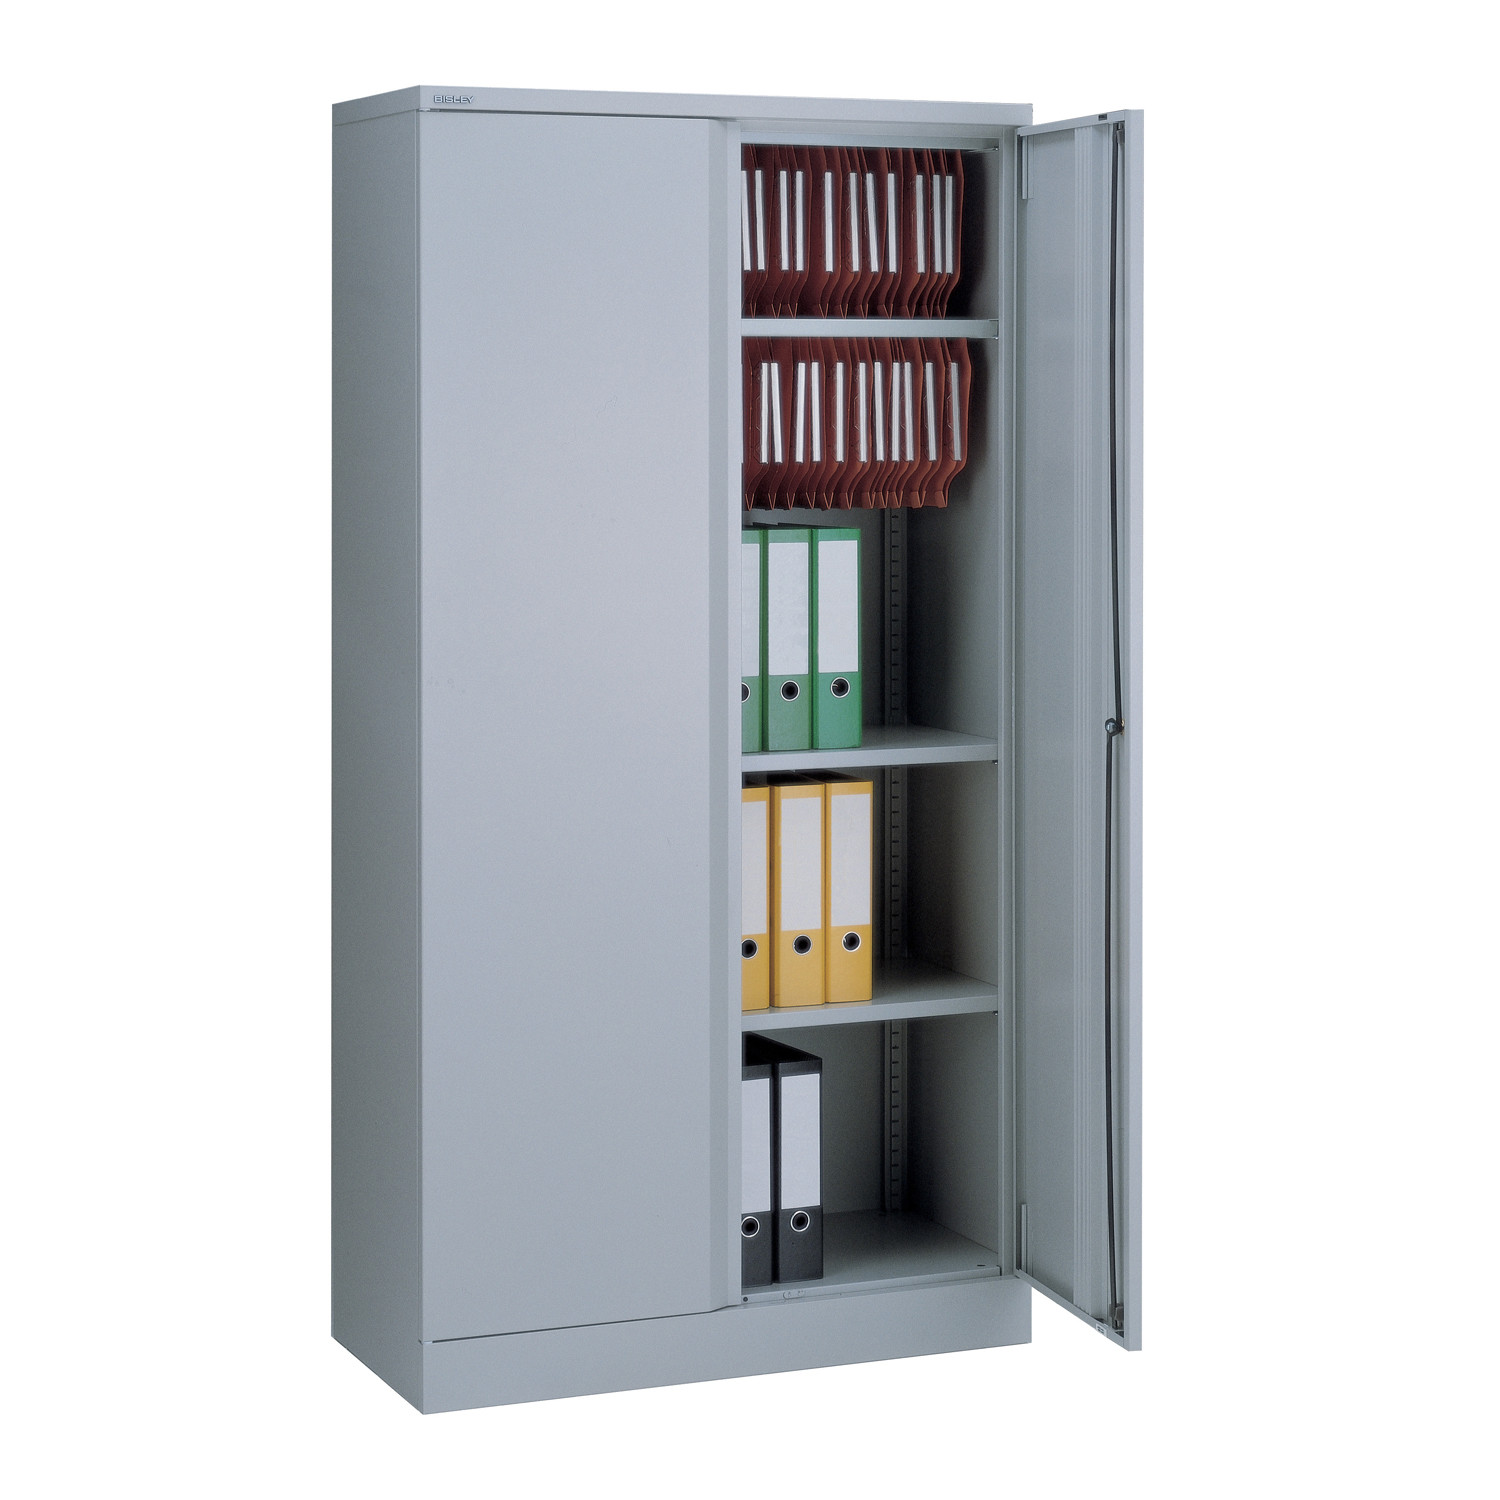 SystemFile 2-Door Cupboard Series